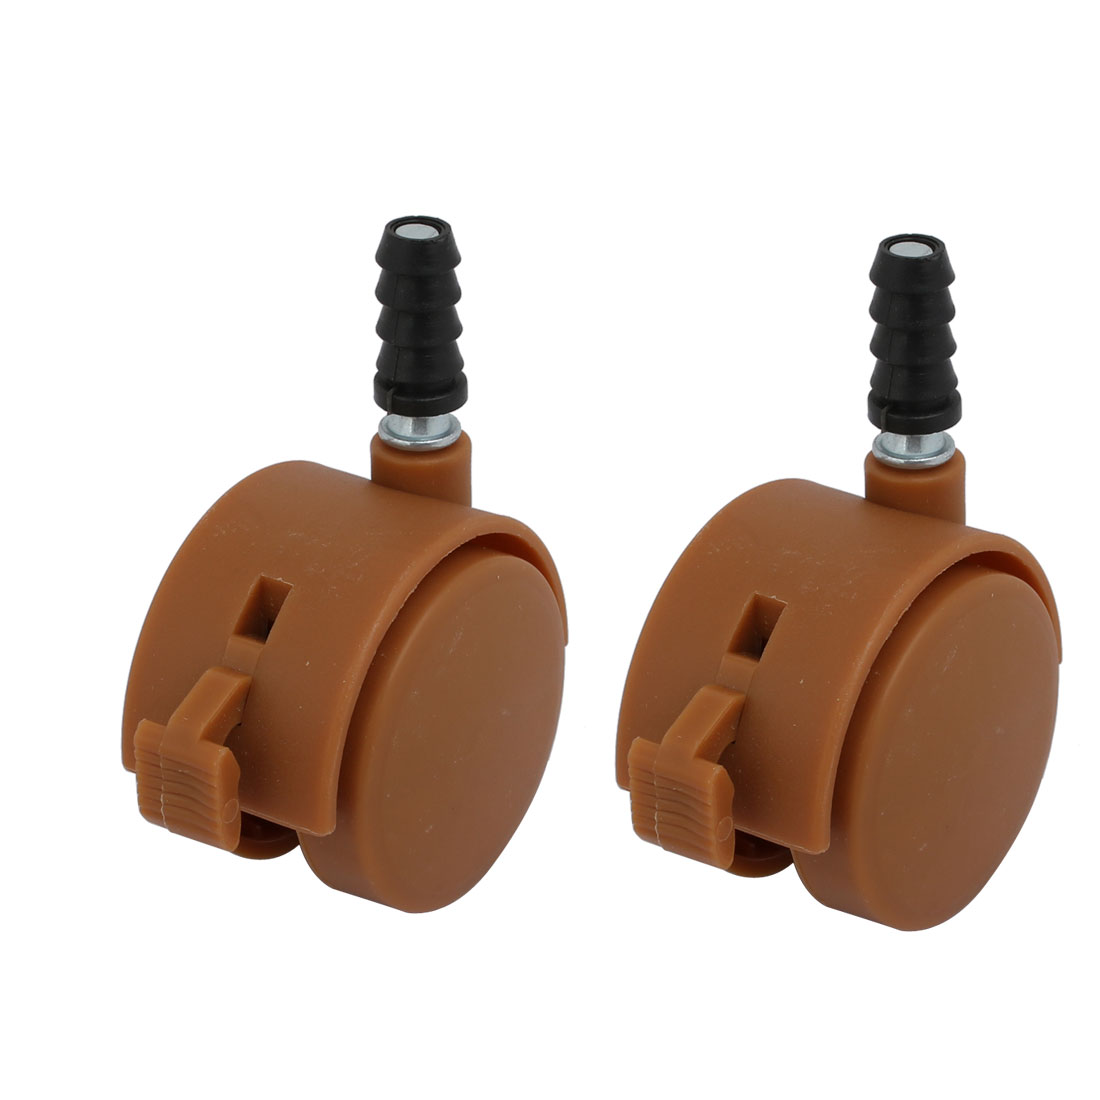 2pcs 2-inch Dia 7mm Stem Swivel Brake Caster Wheel Brown for Crib